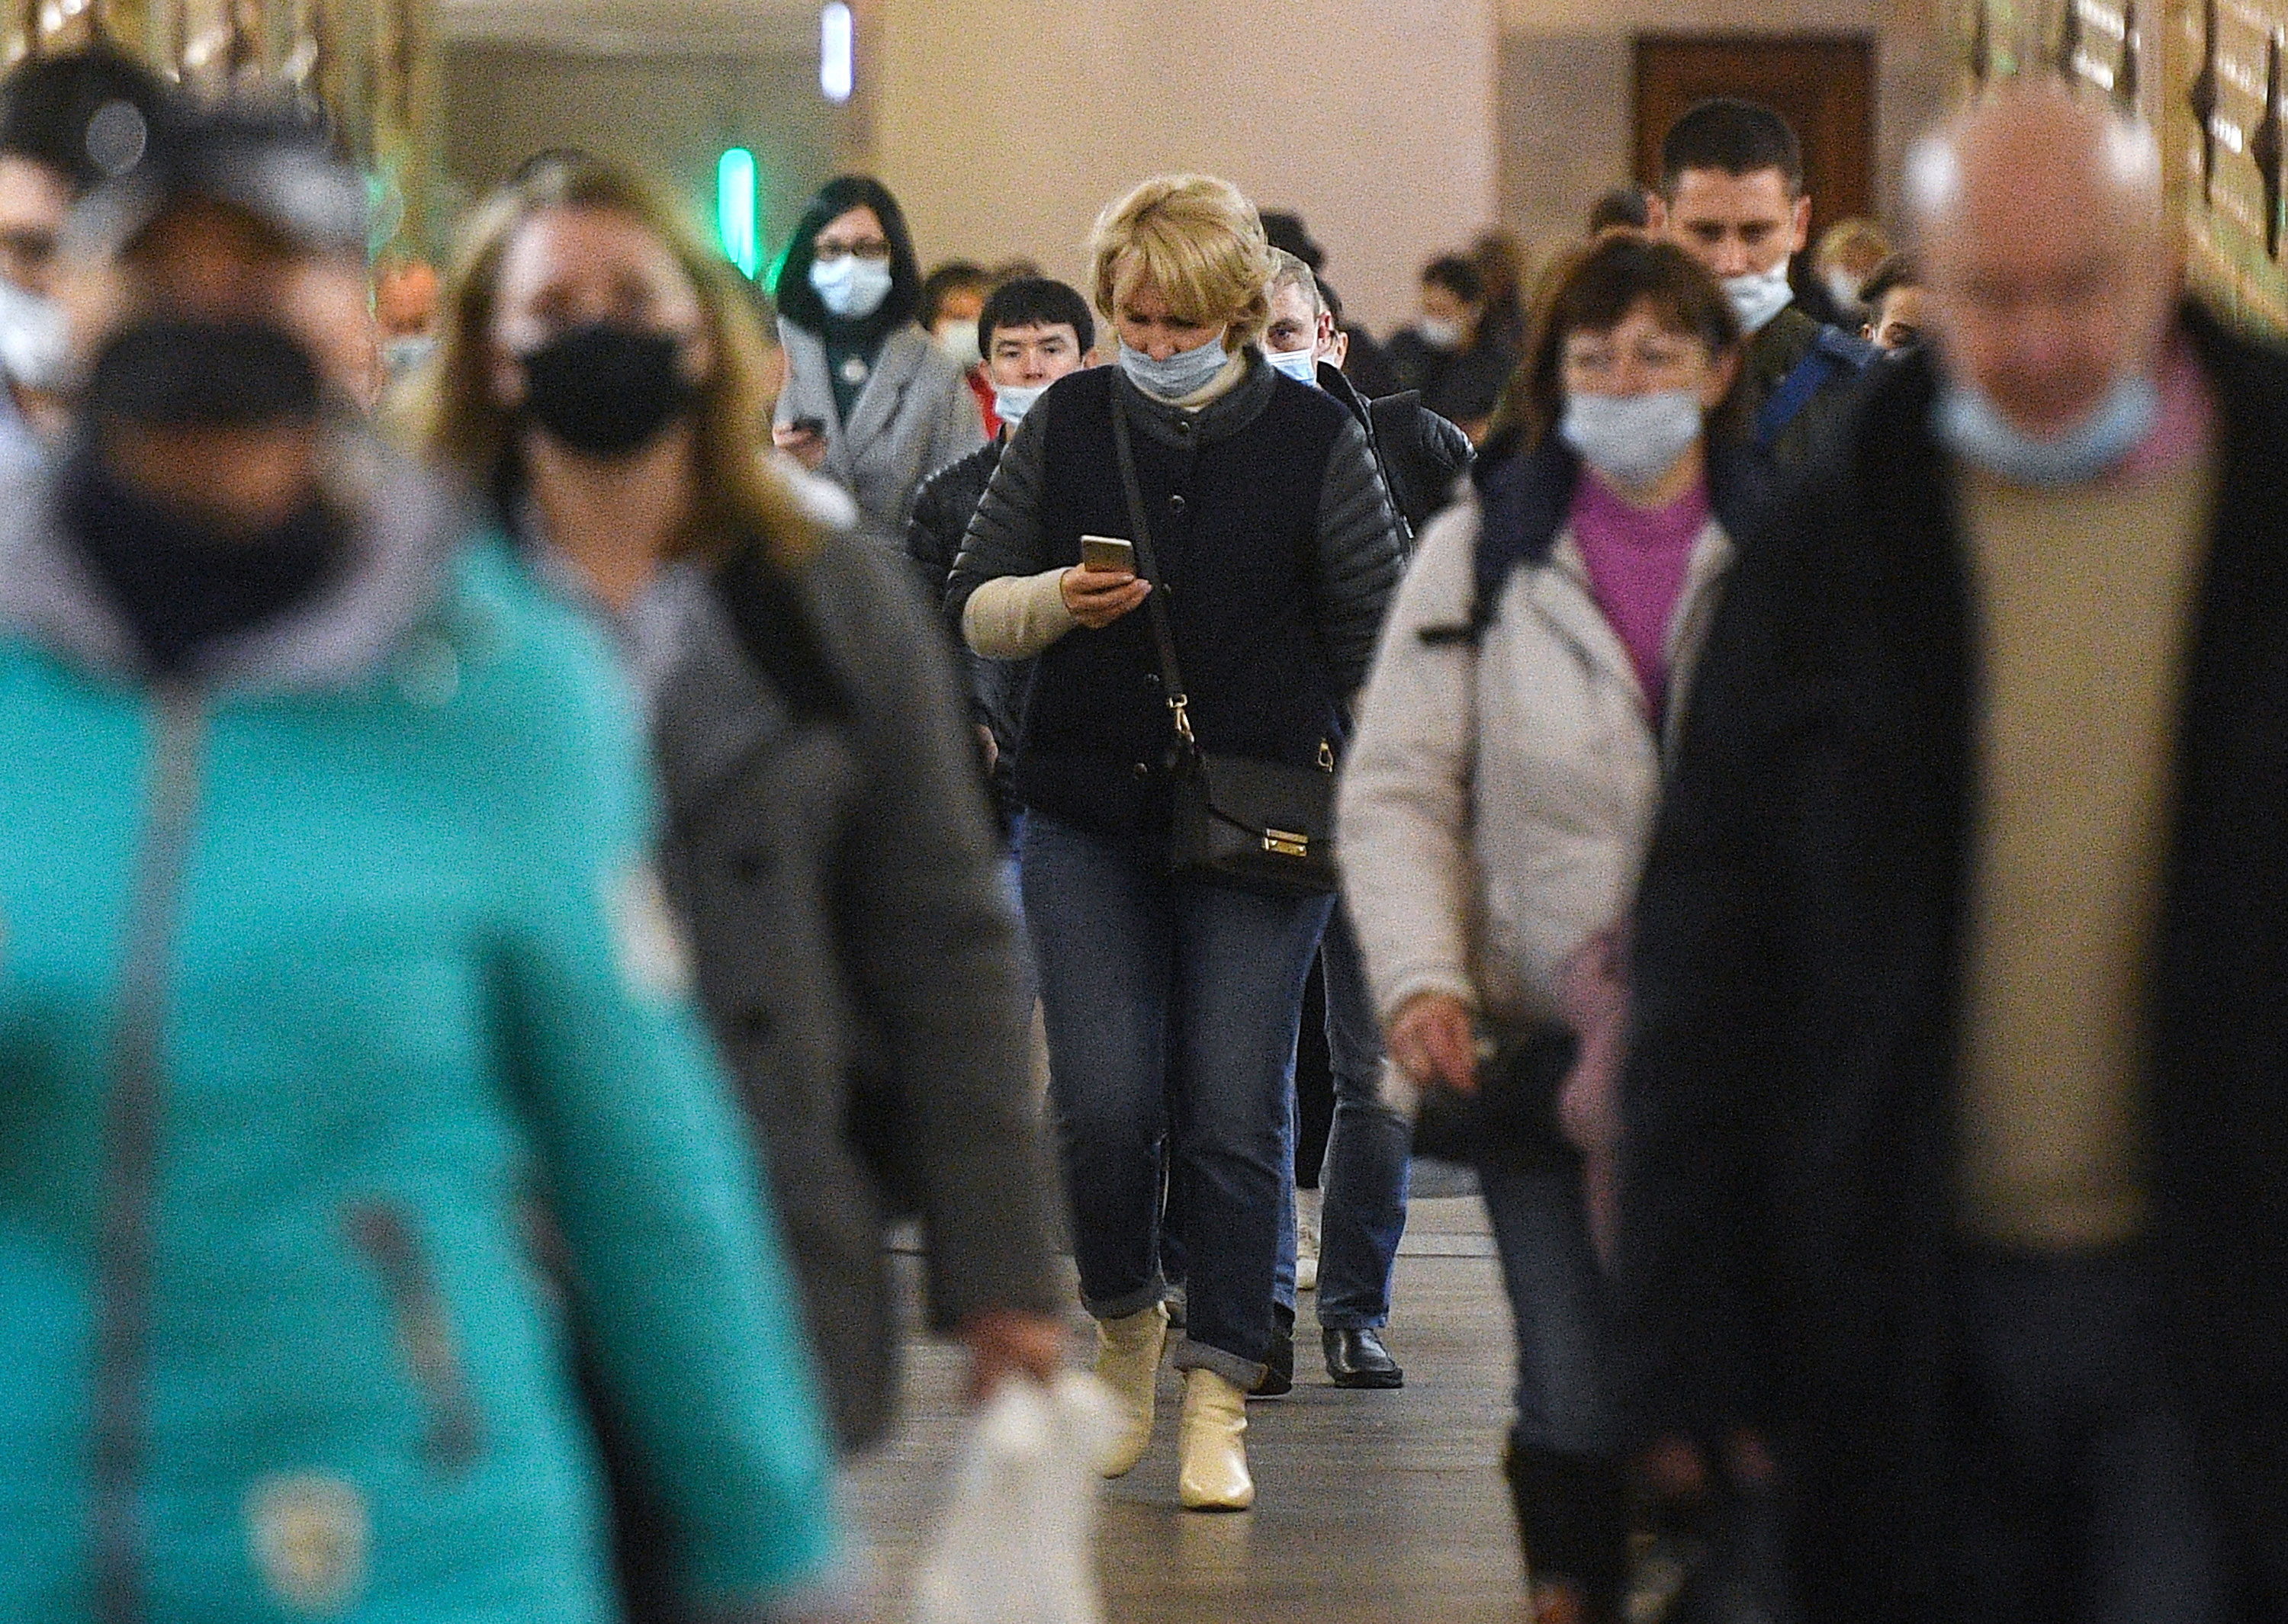 Passengers wear face masks at a metro station in Moscow, Russia, on October 23.